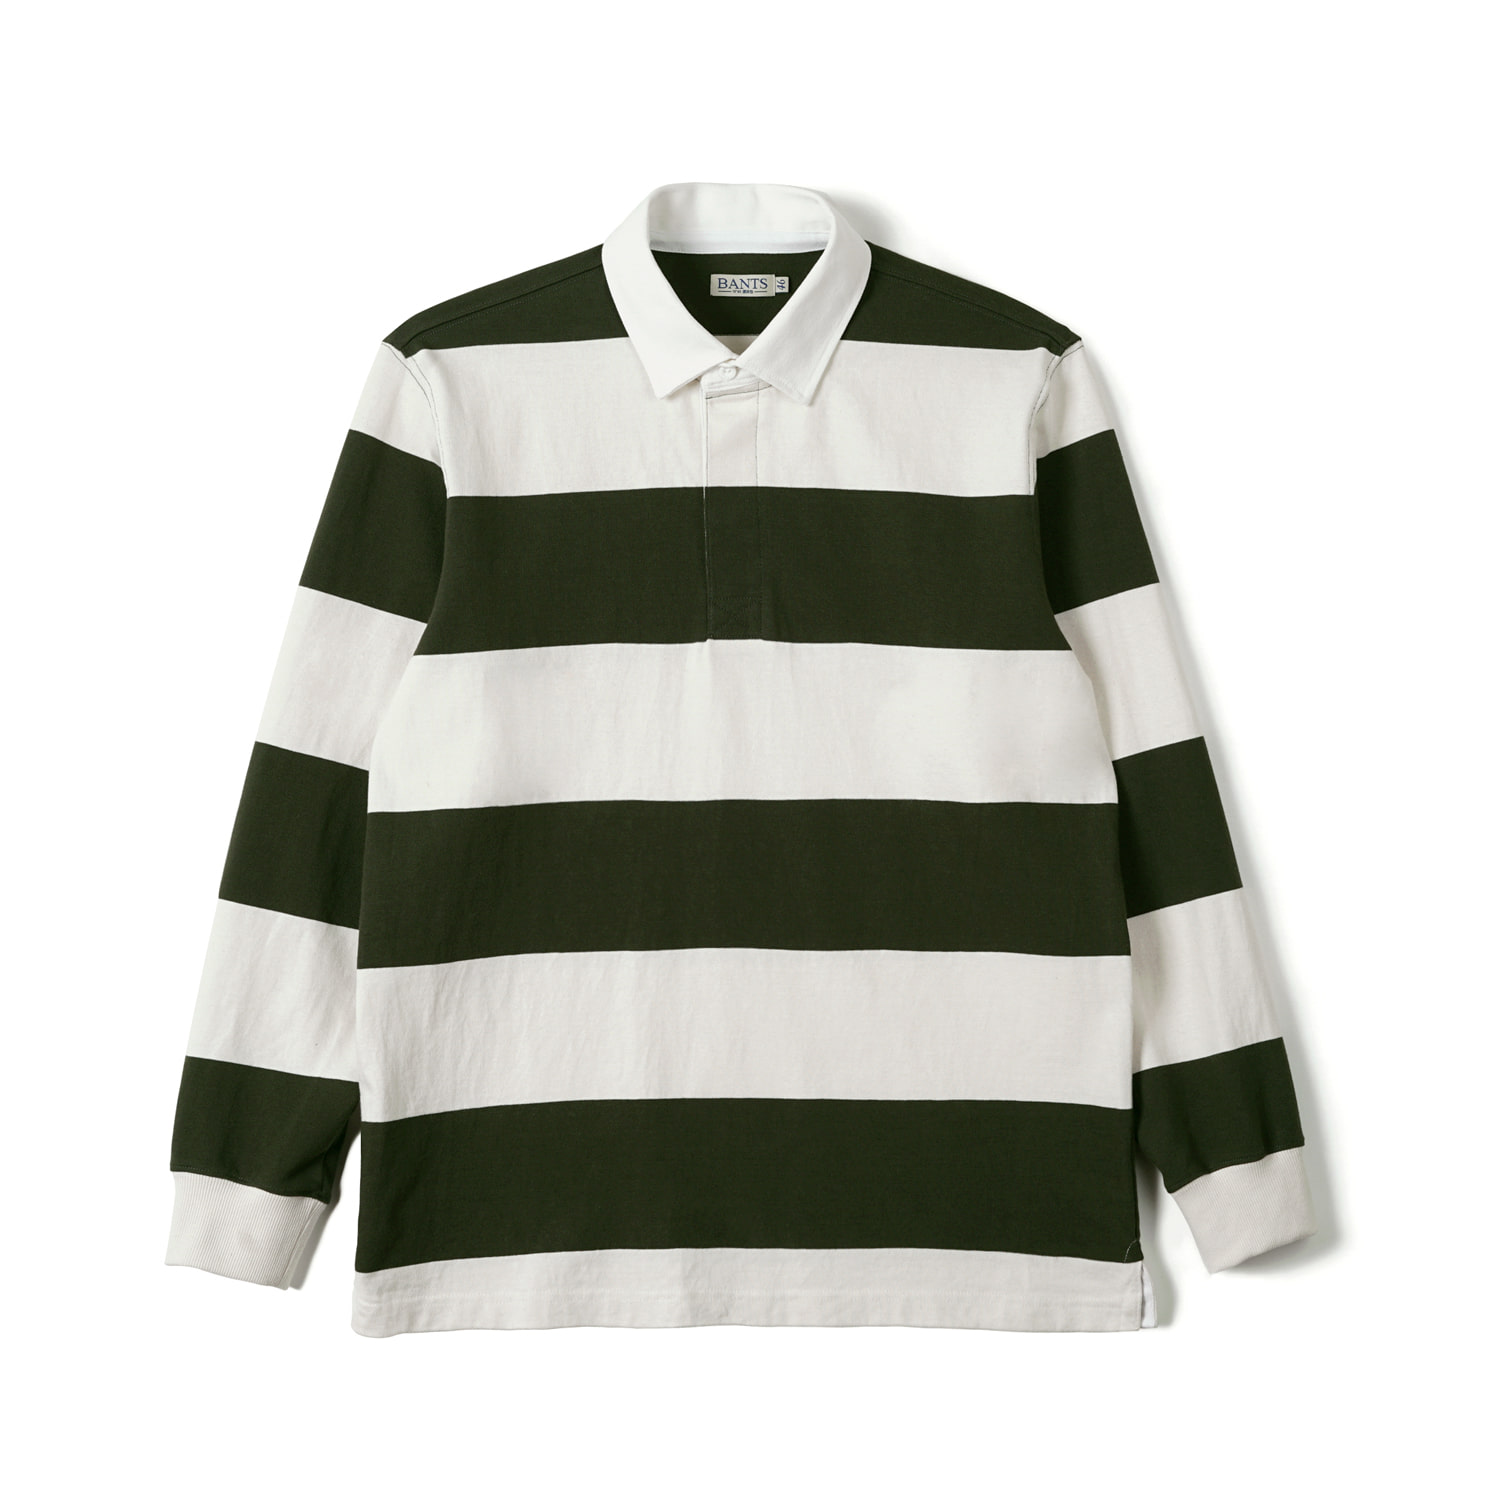 FLB Stripe Cotton Rugby T-shirt Olive x Off WhiteBANTS(반츠)